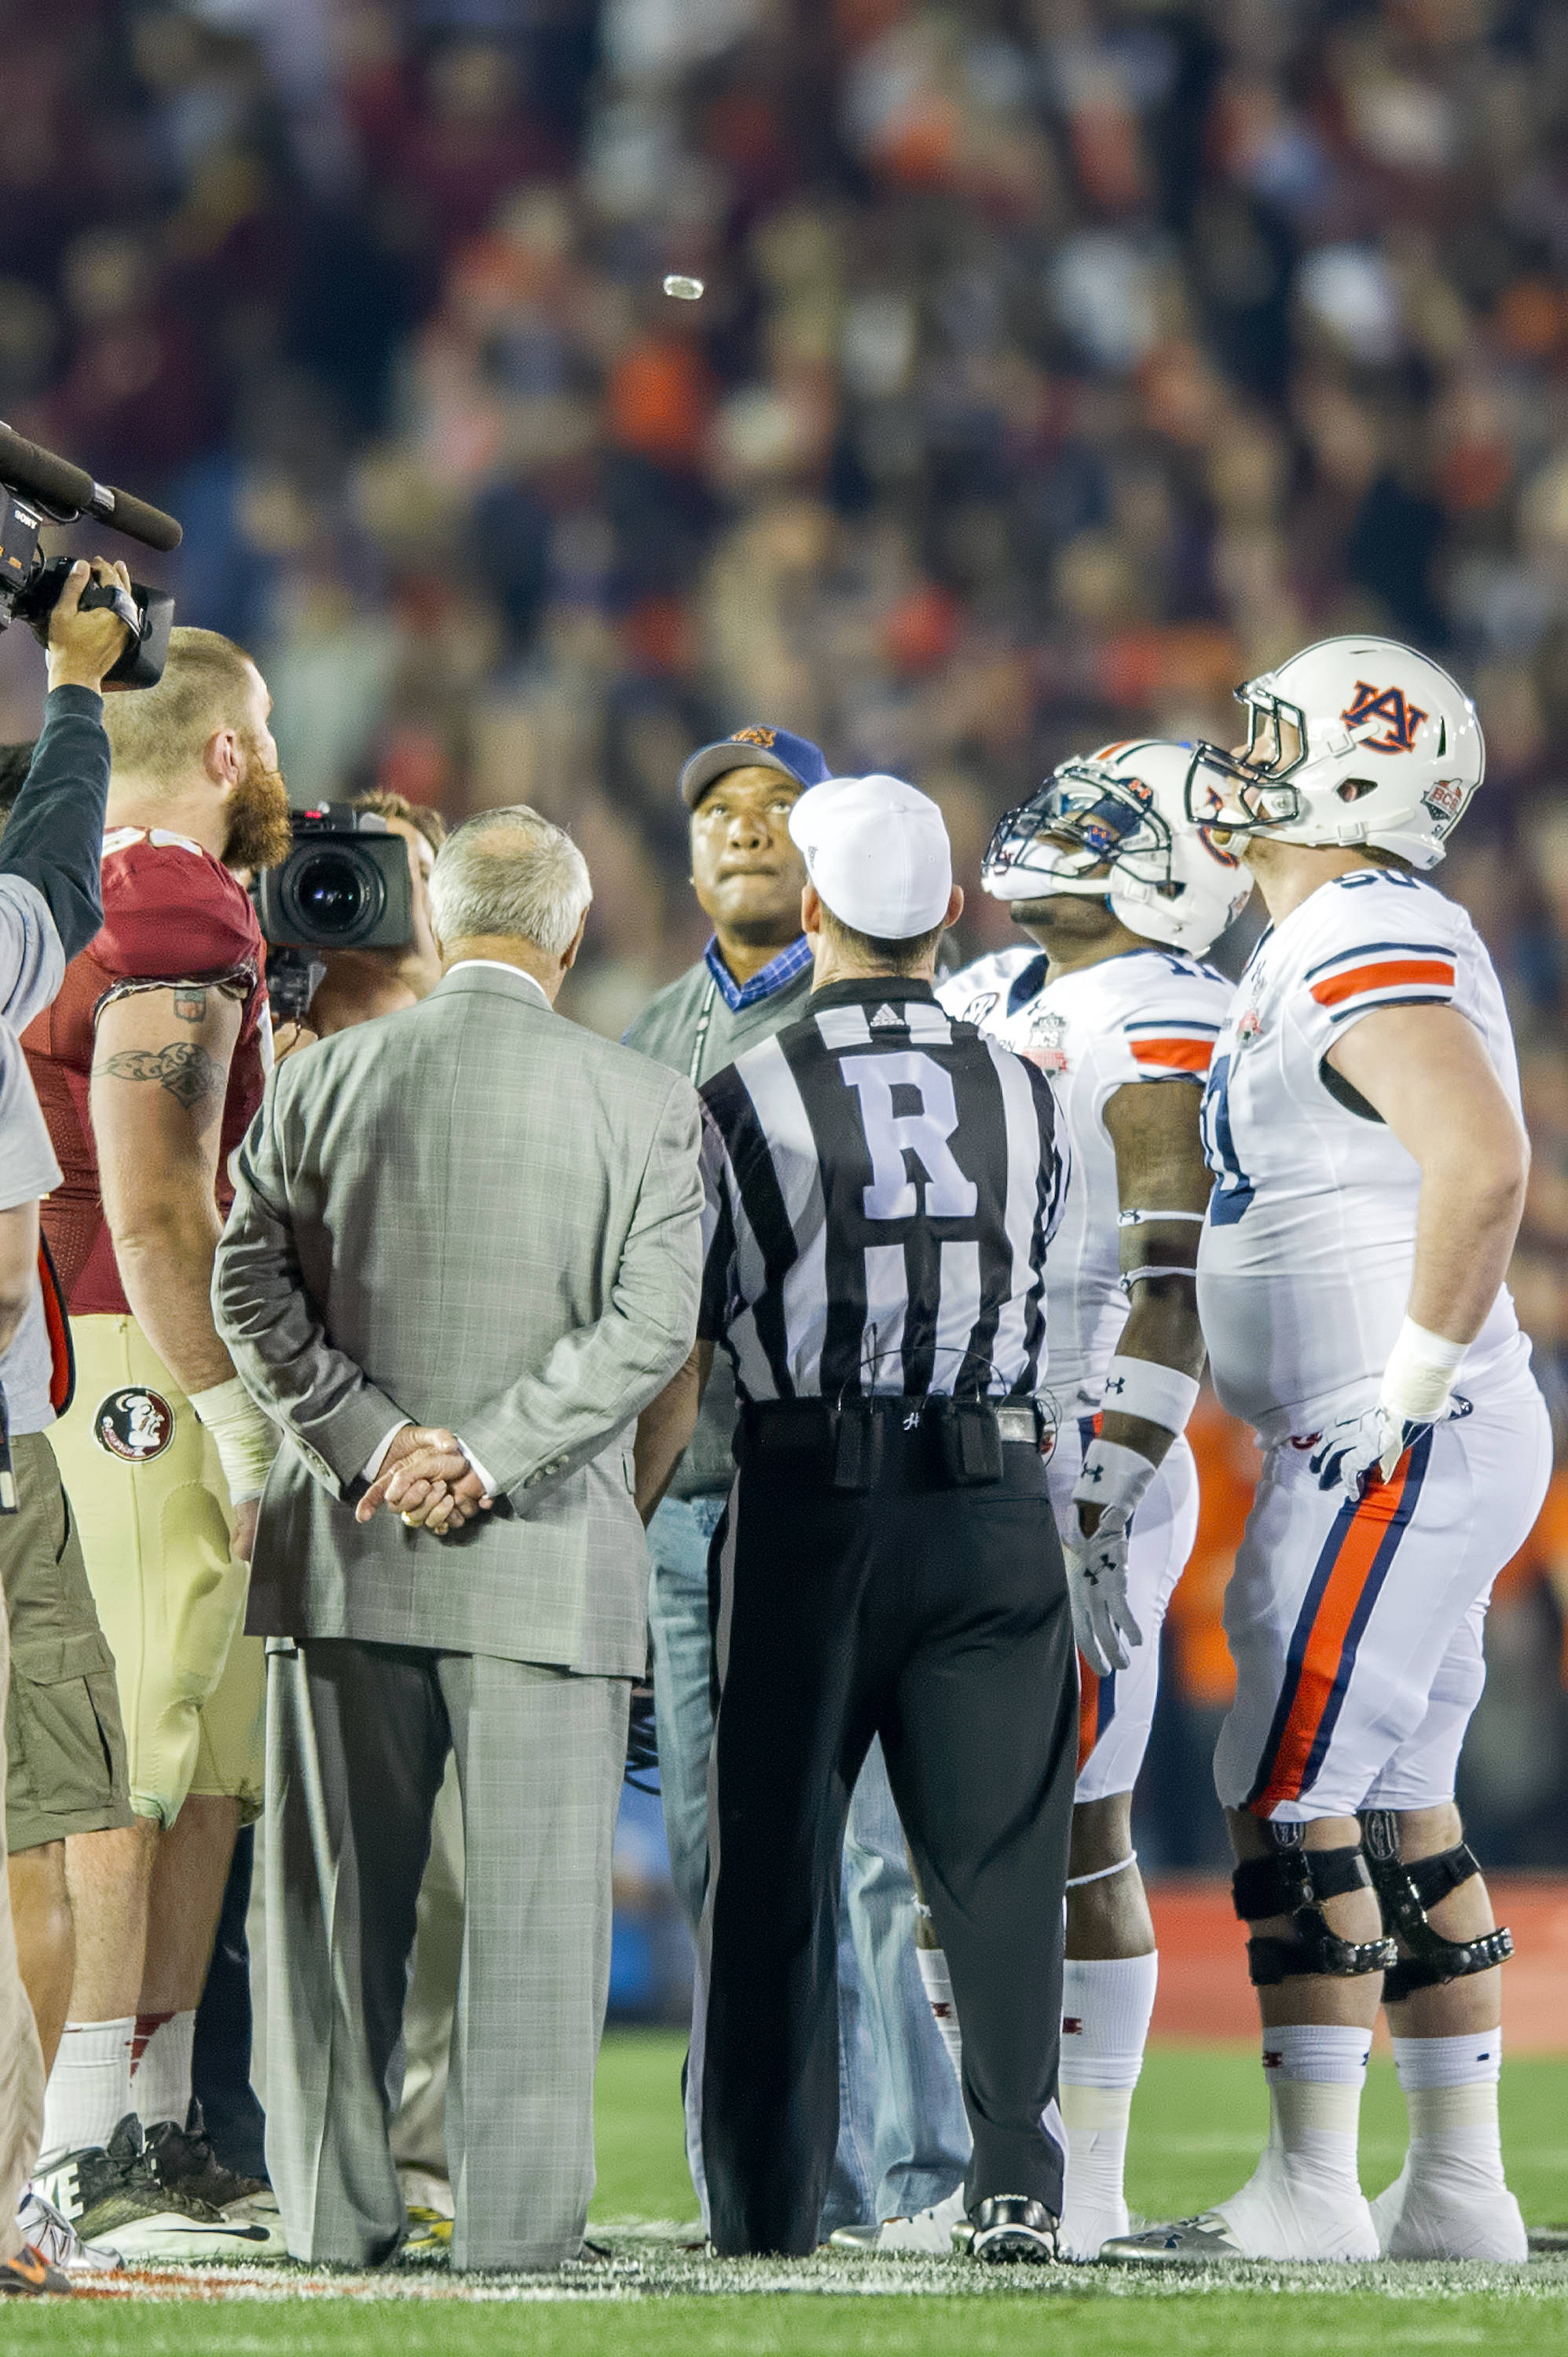 Bobby Bowden serves as Honorary Captain for the coin flip